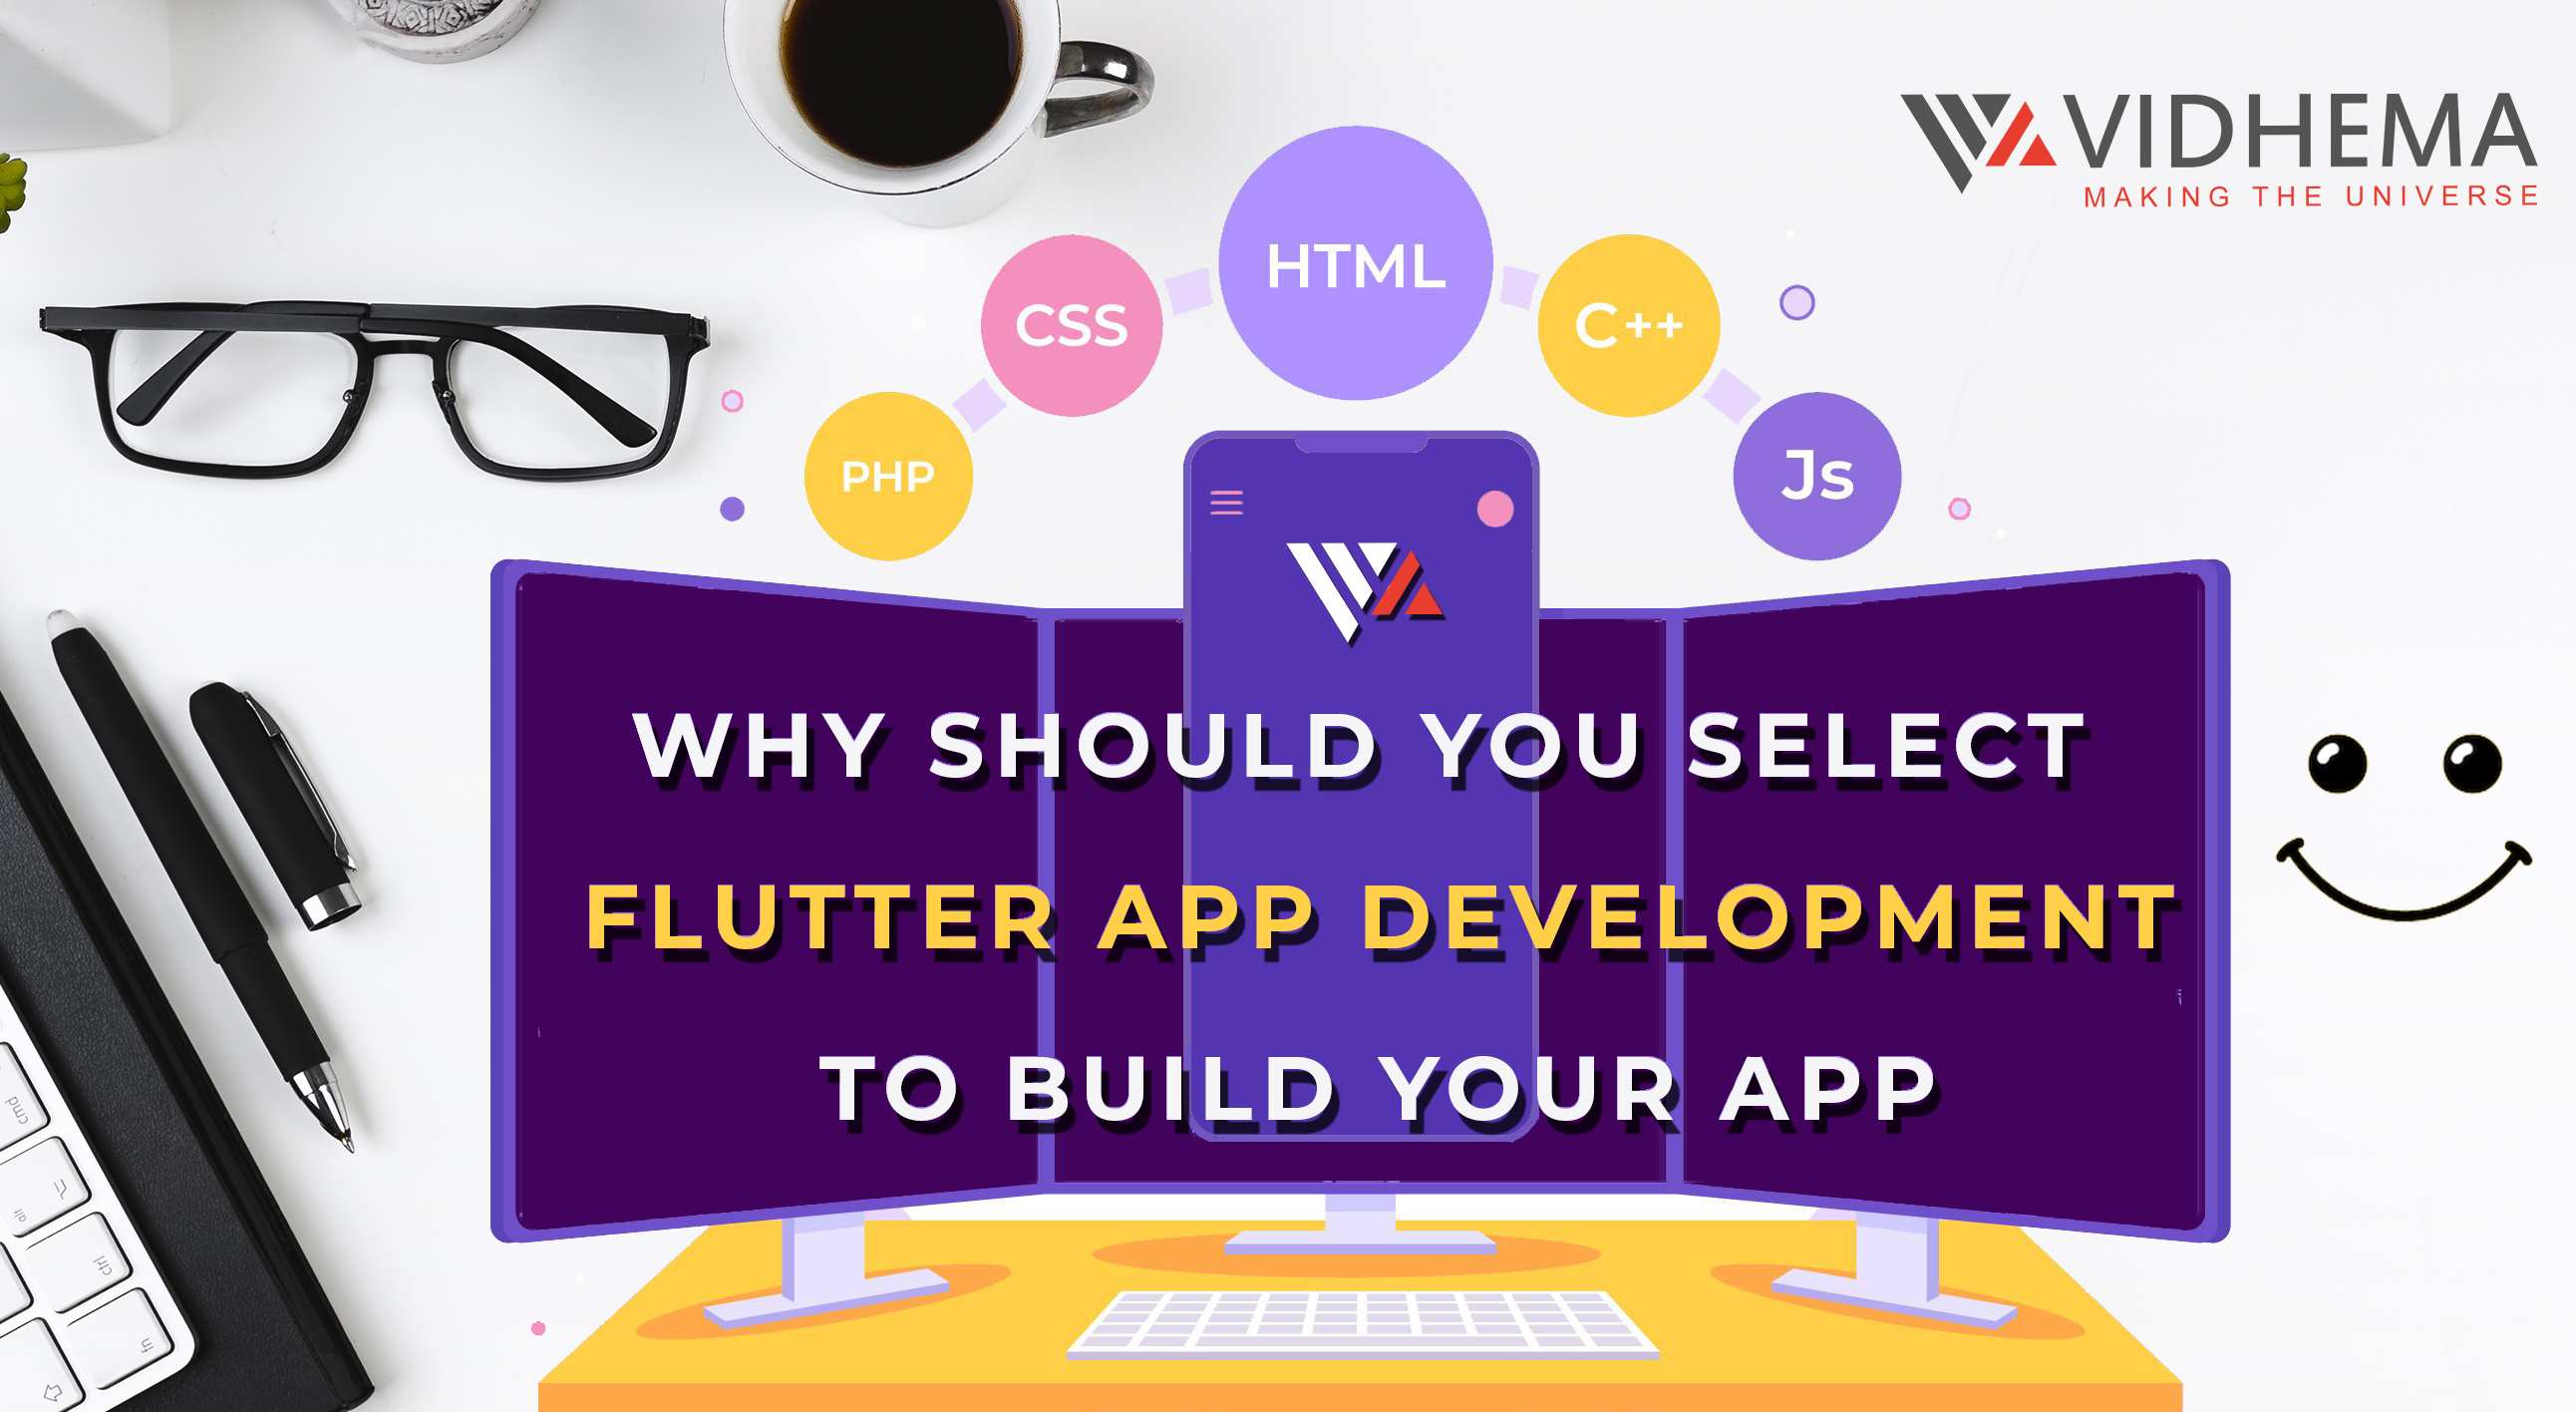 Why Should You Select Flutter App Development To Build Your App?